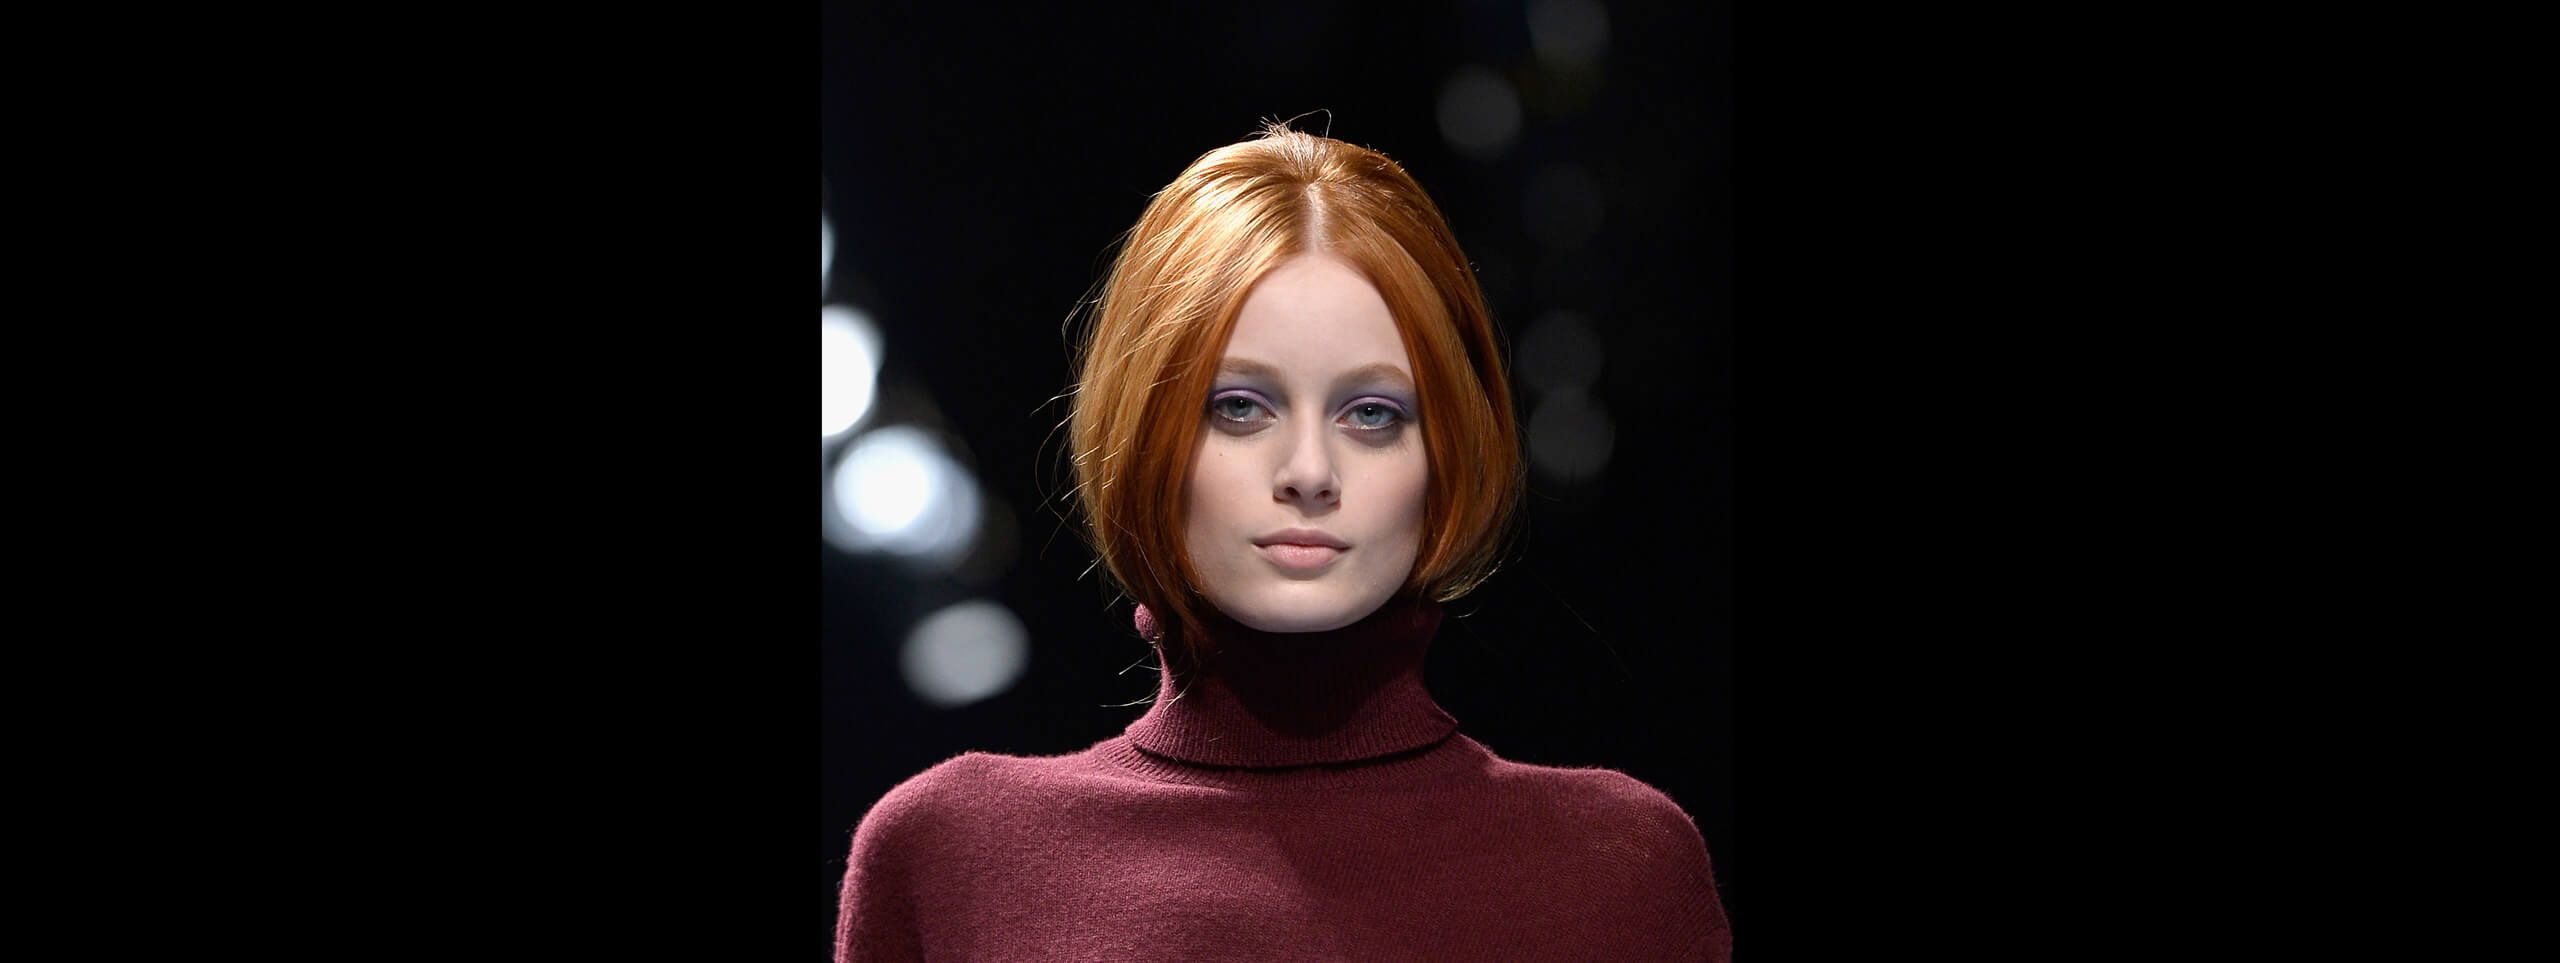 Woman with hairstyle tucked into turtleneck